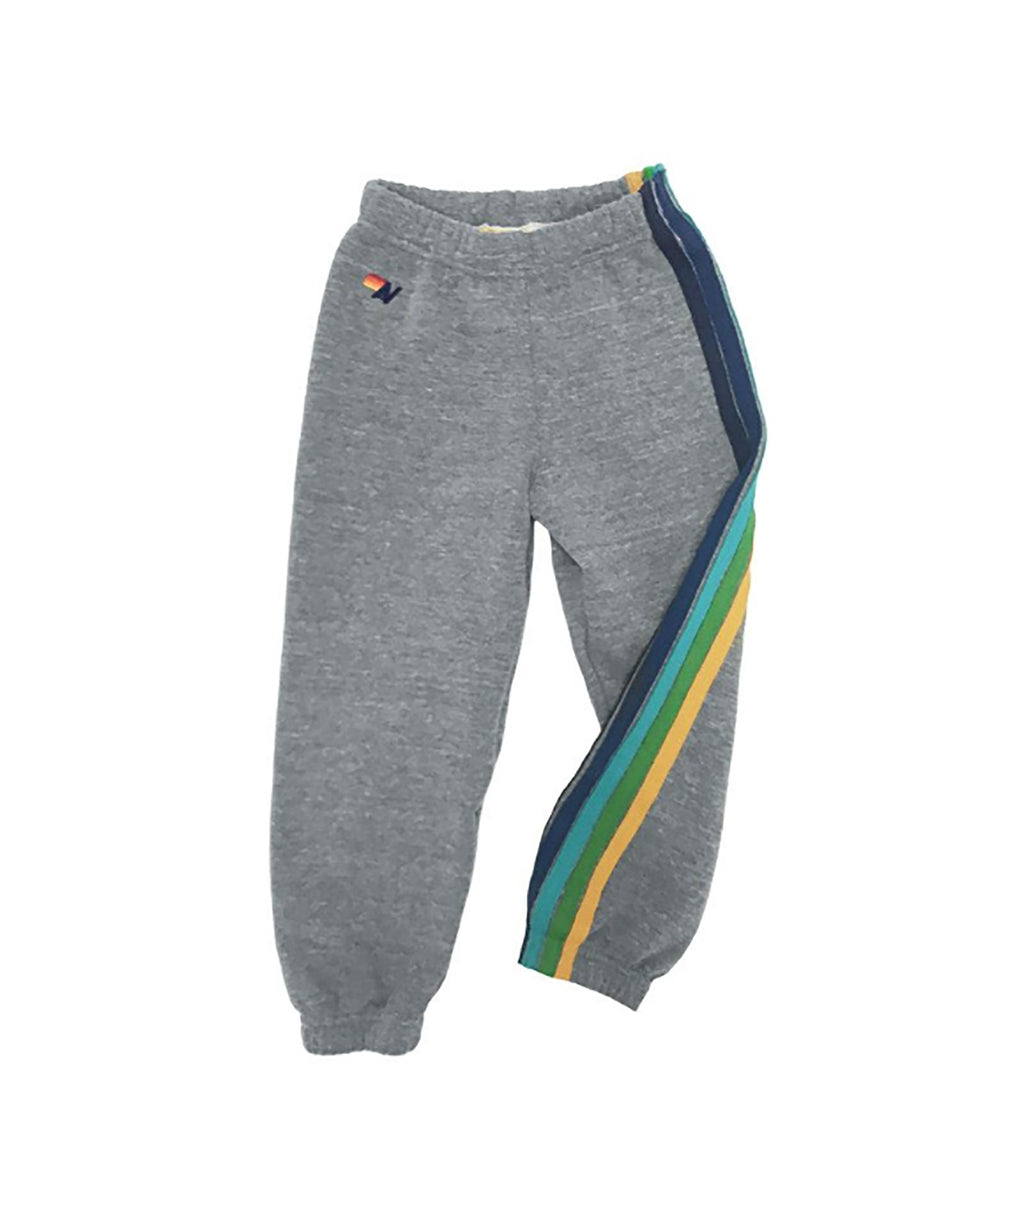 Aviator Nation Girls Heather Grey with Colored Stripes Sweatpants